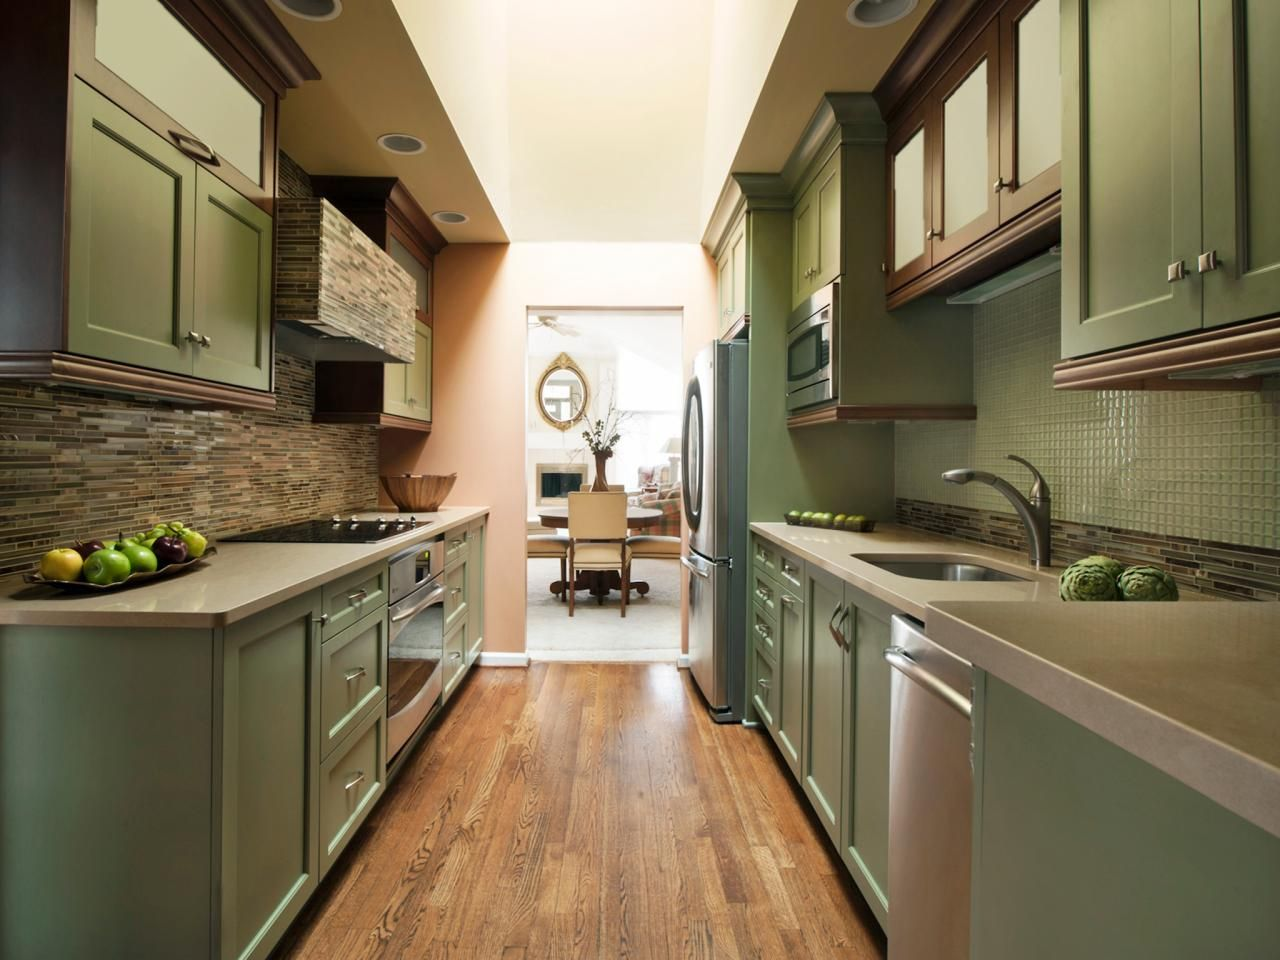 Small Narrow Kitchen Design  Lowes Paint Colors Interior Check Amazing Kitchen Design And Colors Review